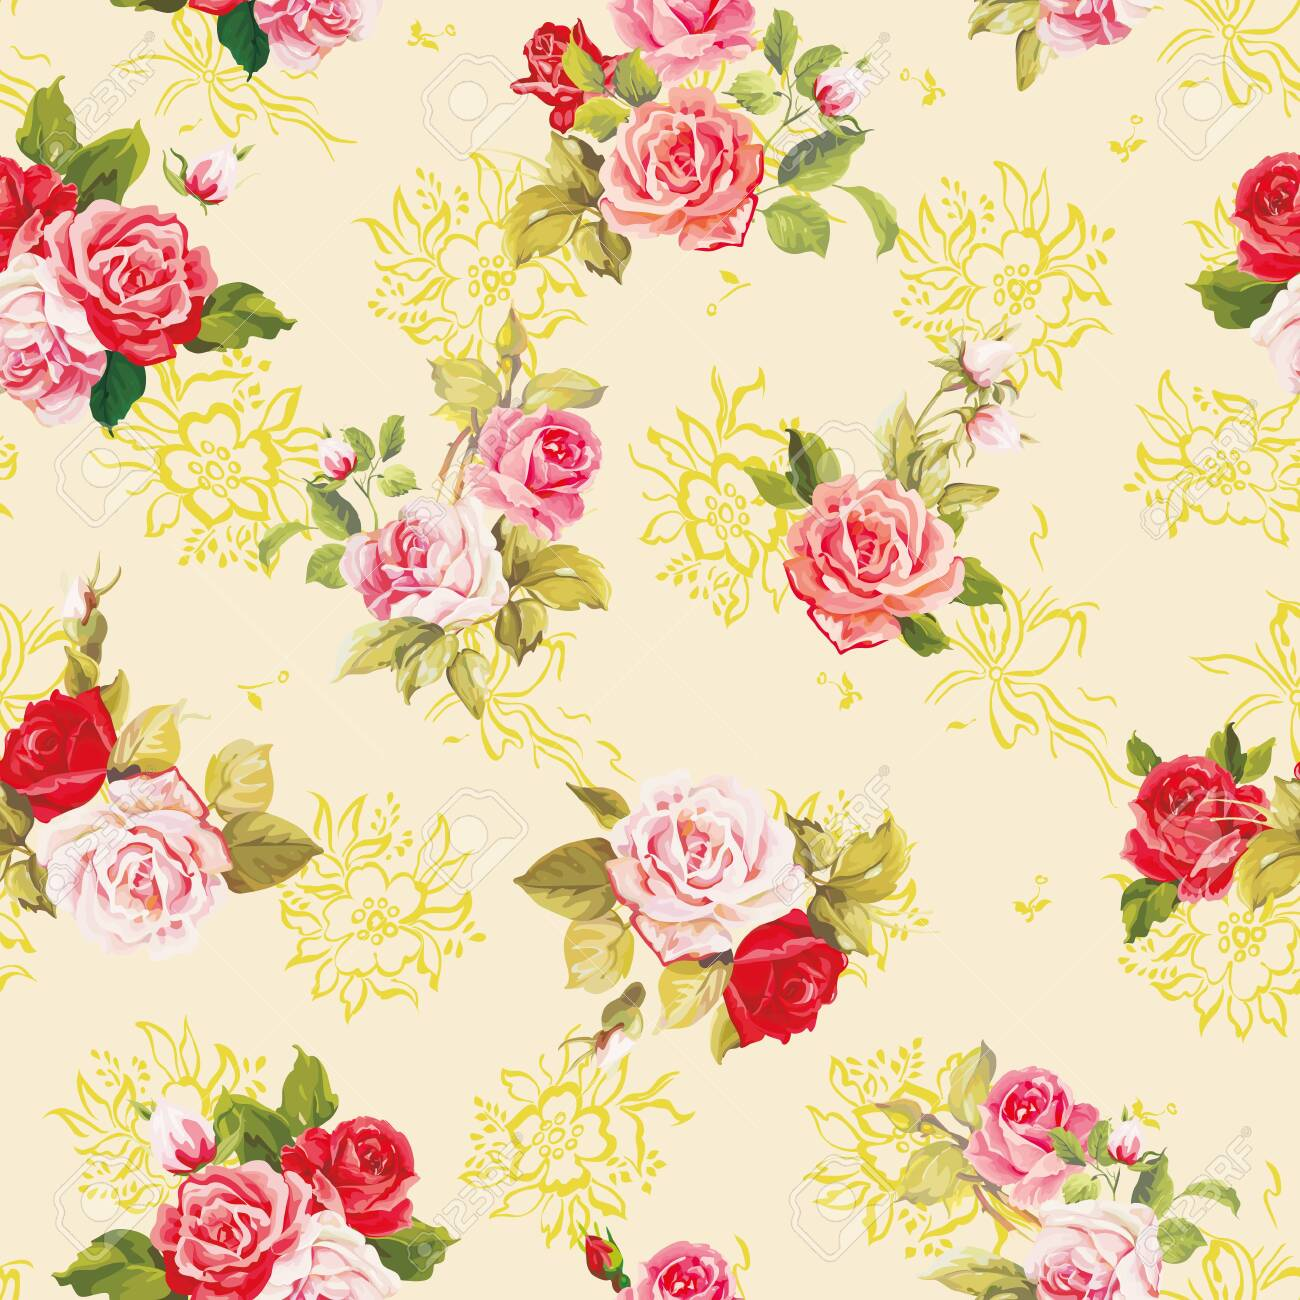 Elegance texture with roses. Stylish beautiful floral seamless pattern. - 134274513